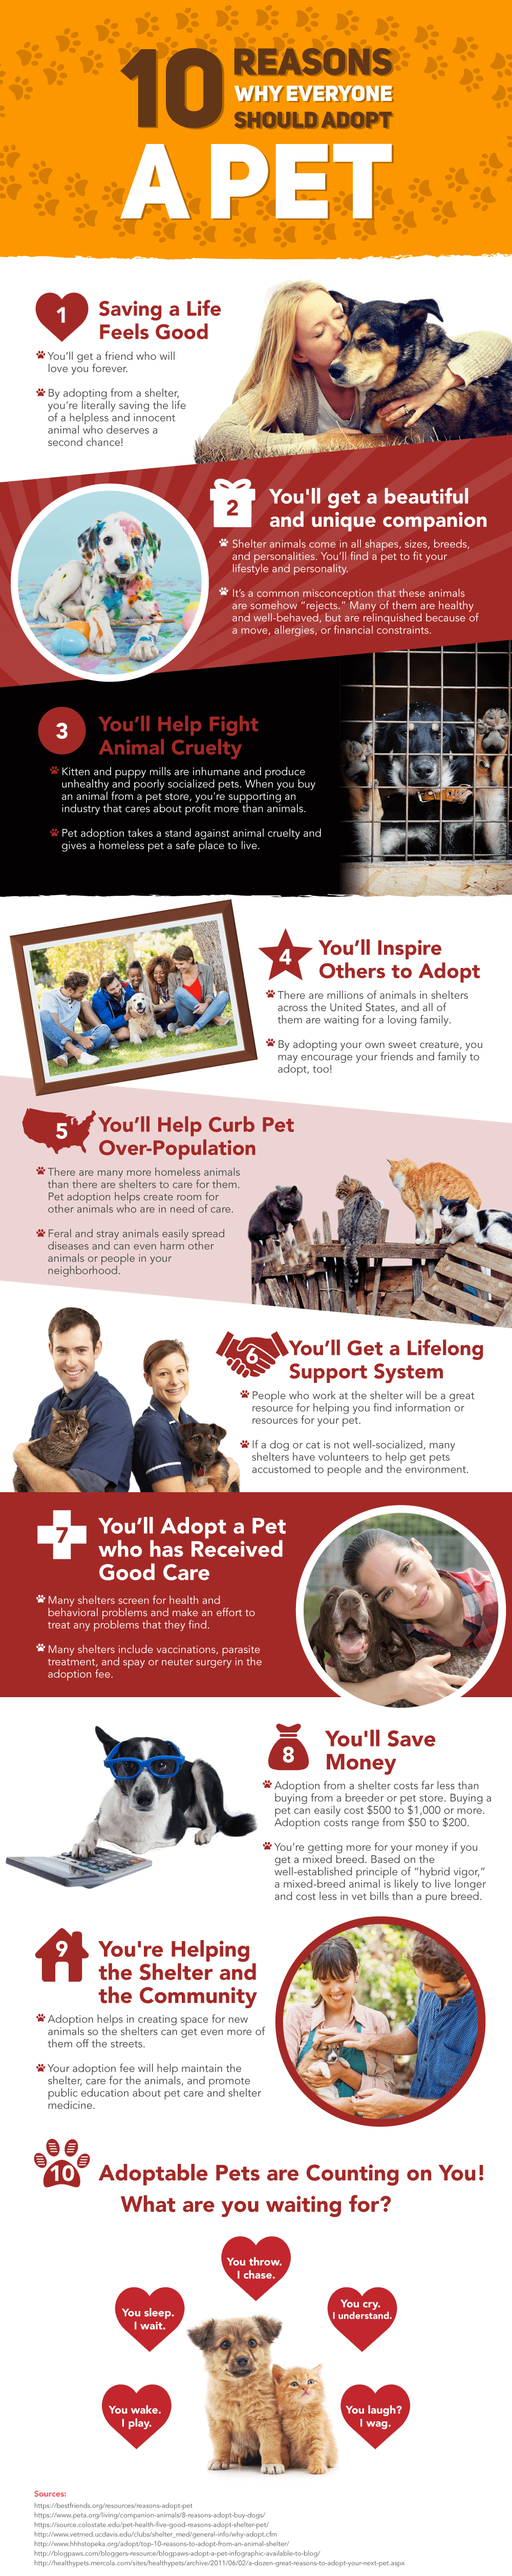 10-Reasons-To-Adopt-A-Pet.png